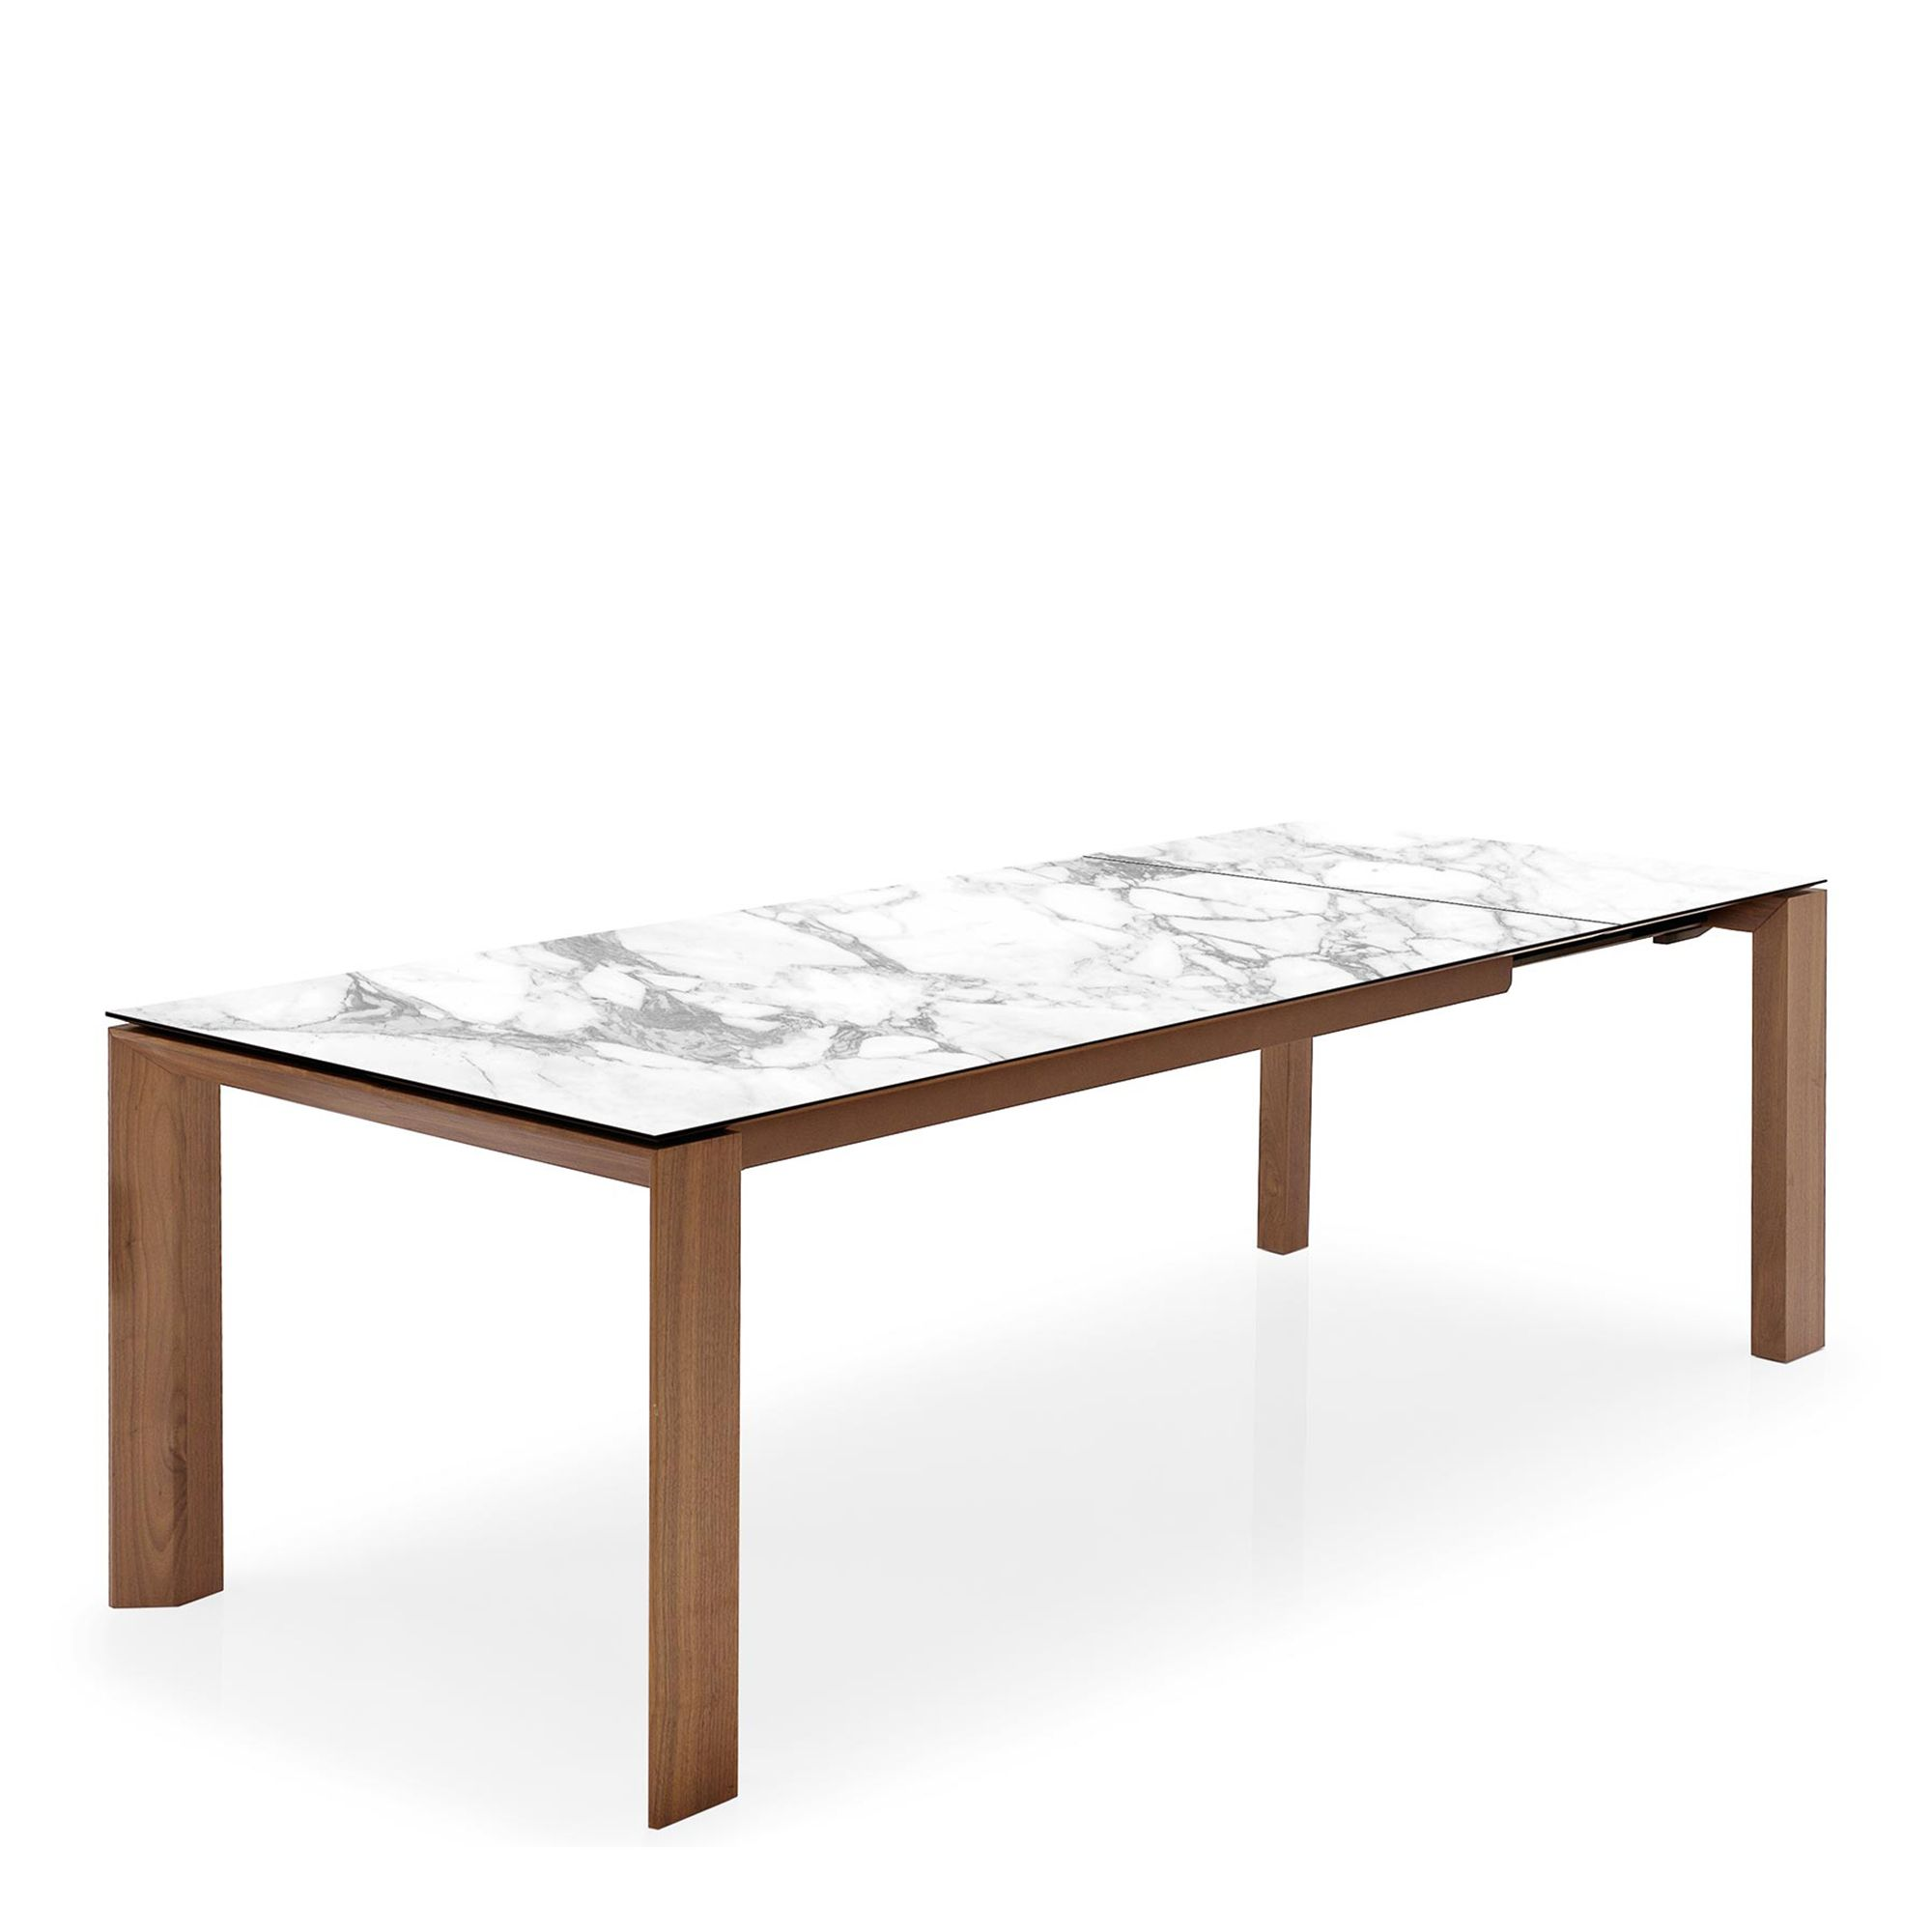 Calligaris Omnia Cs4058 Lv Ext Dining Table With White Marble Ceramic Top Dining Table Extension Dining Table Dining Table Online